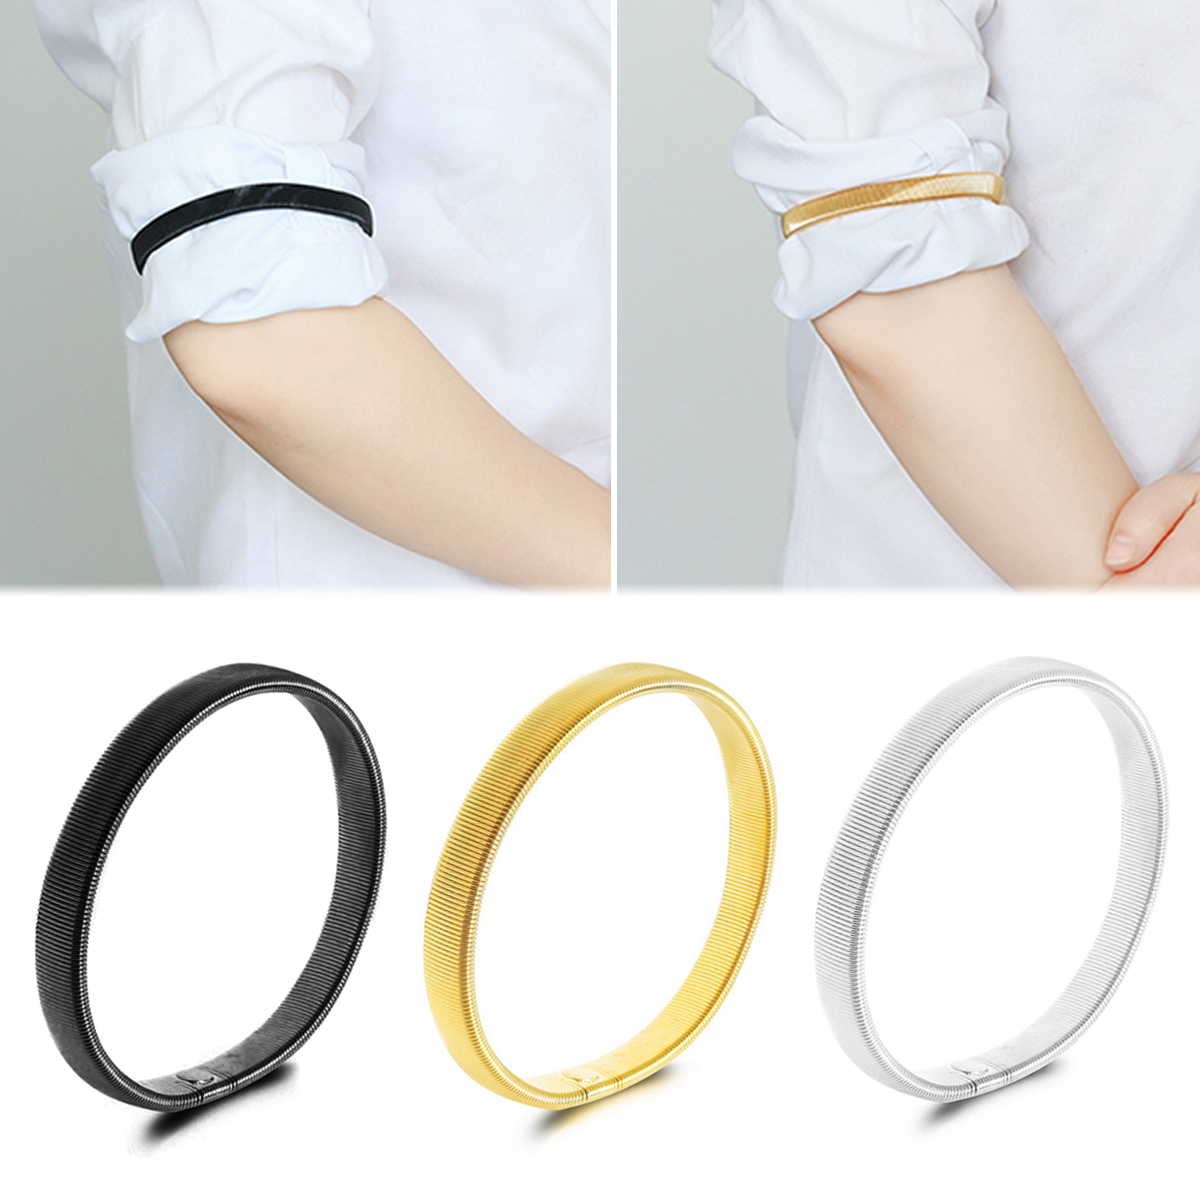 2 Pcs Non-slip Metal Armband Stretch Garter Shirt Sleeve Holder Unisex Sleeve Holders Armbands Elastic Armband Accessories Cheapest Price From Our Site Men's Arm Warmers Men's Accessories